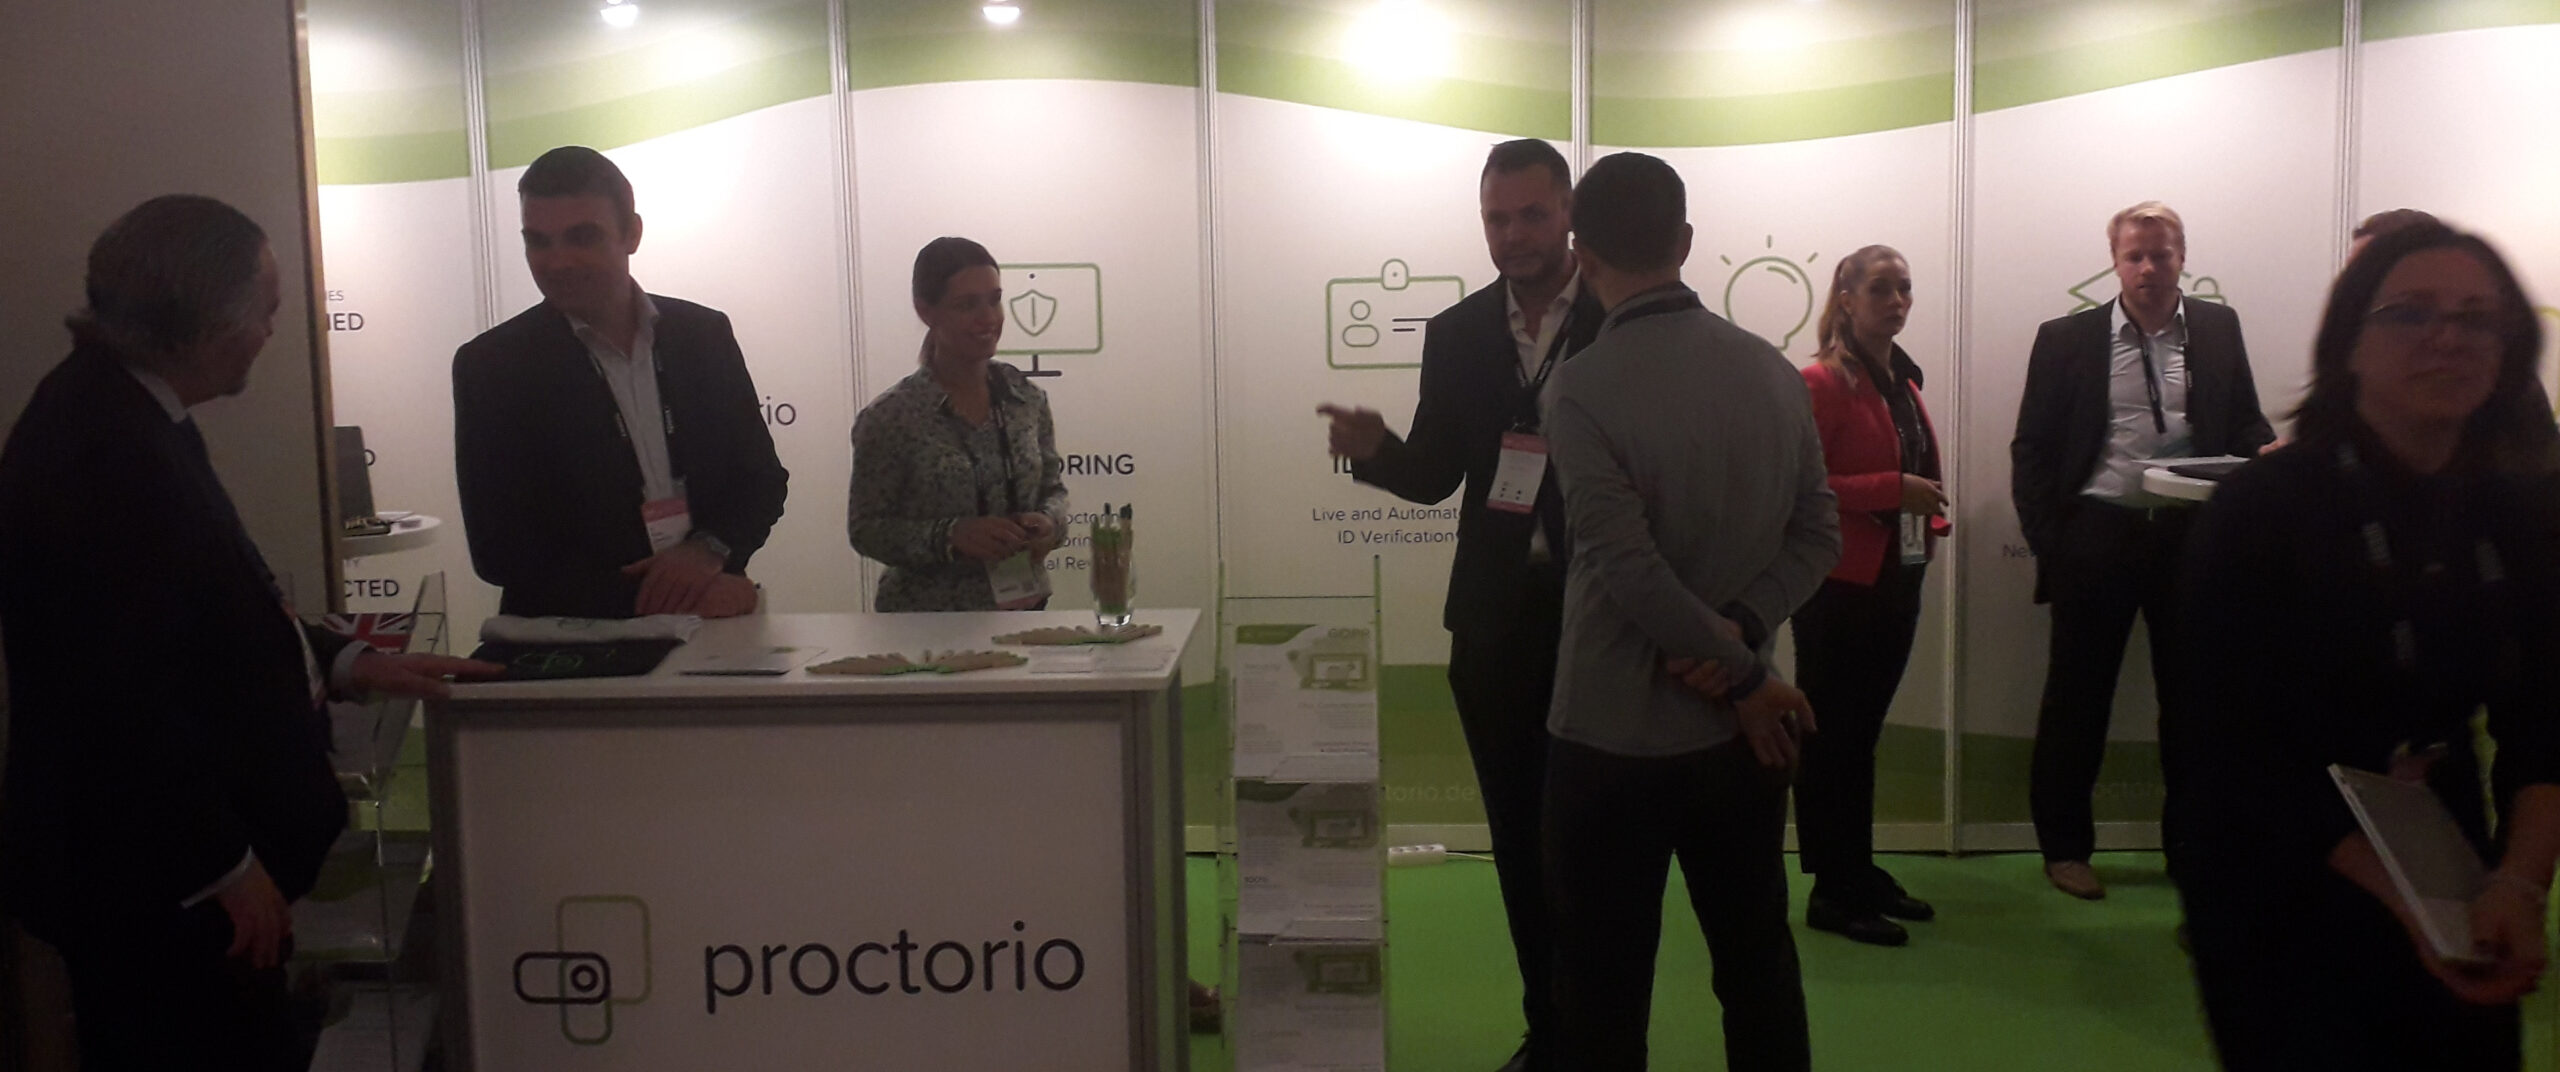 The proctorio stand at Online Educa Berlin 2019. Photo credit - RepresentEdTech